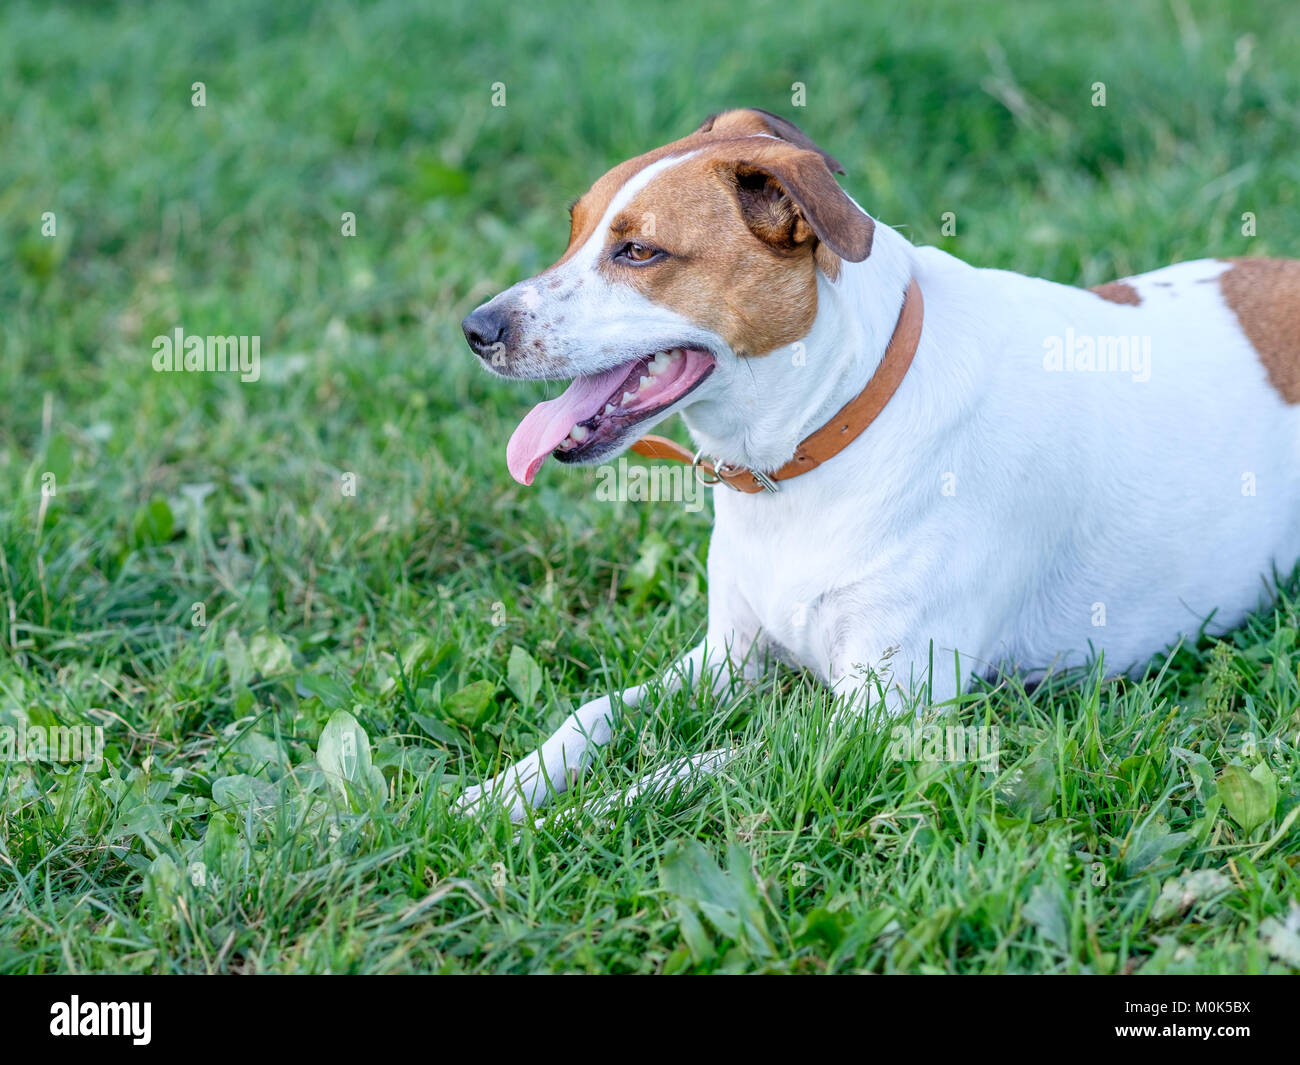 Five-year-old Danish Swedish Farmdog resting on a lawn. This breed, which originates from Denmark and southern Sweden - Stock Image